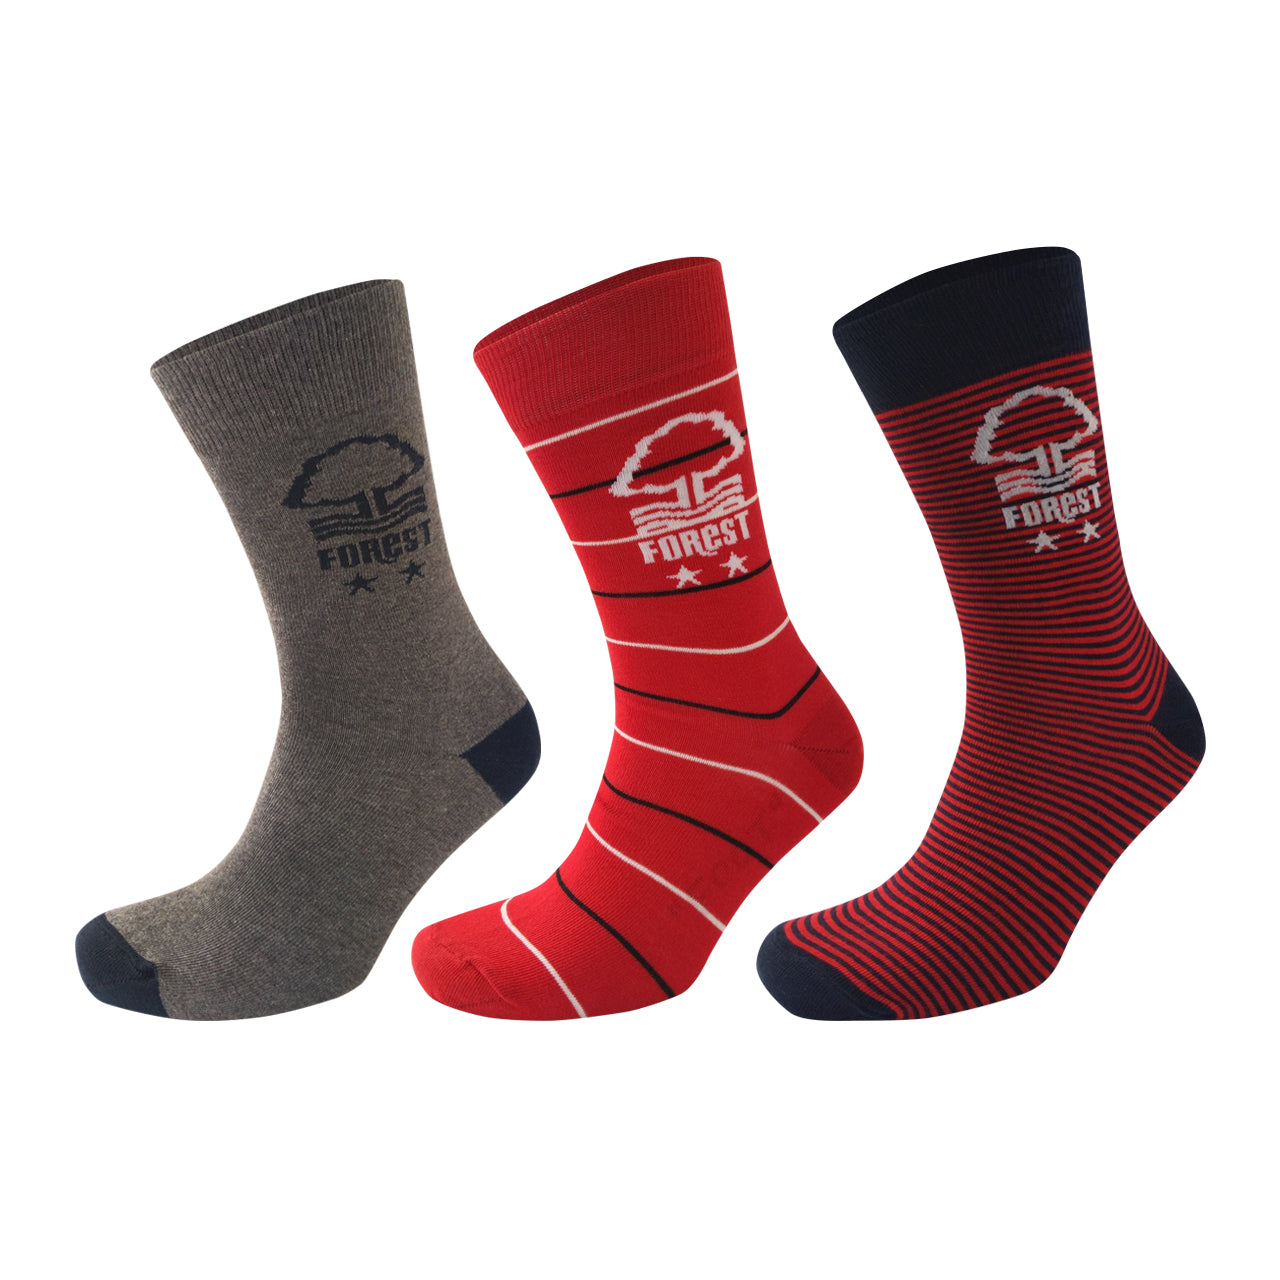 NFFC Mens 3 Pack Socks - Size 6-11